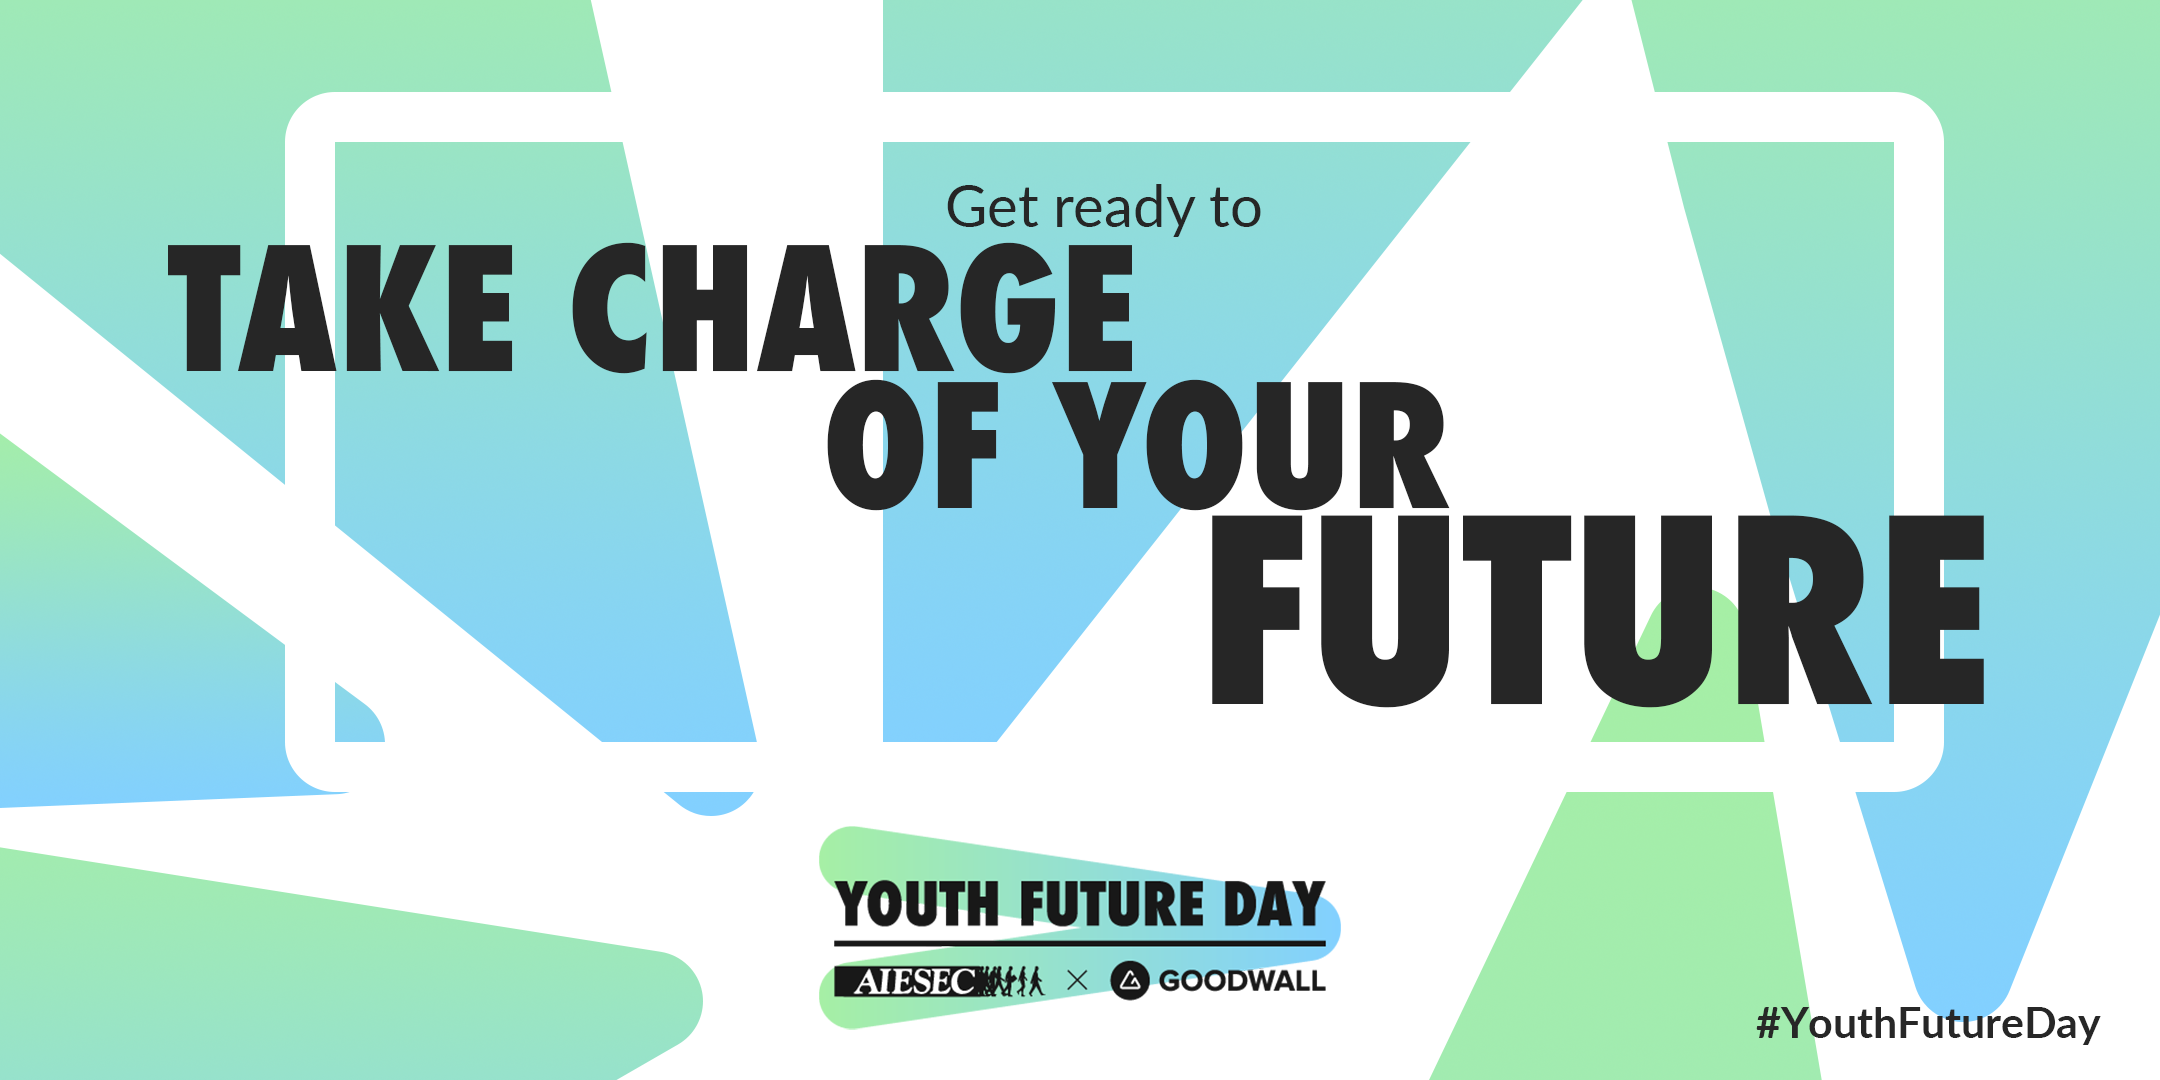 Youth Future Day AIESEC and Goodwall